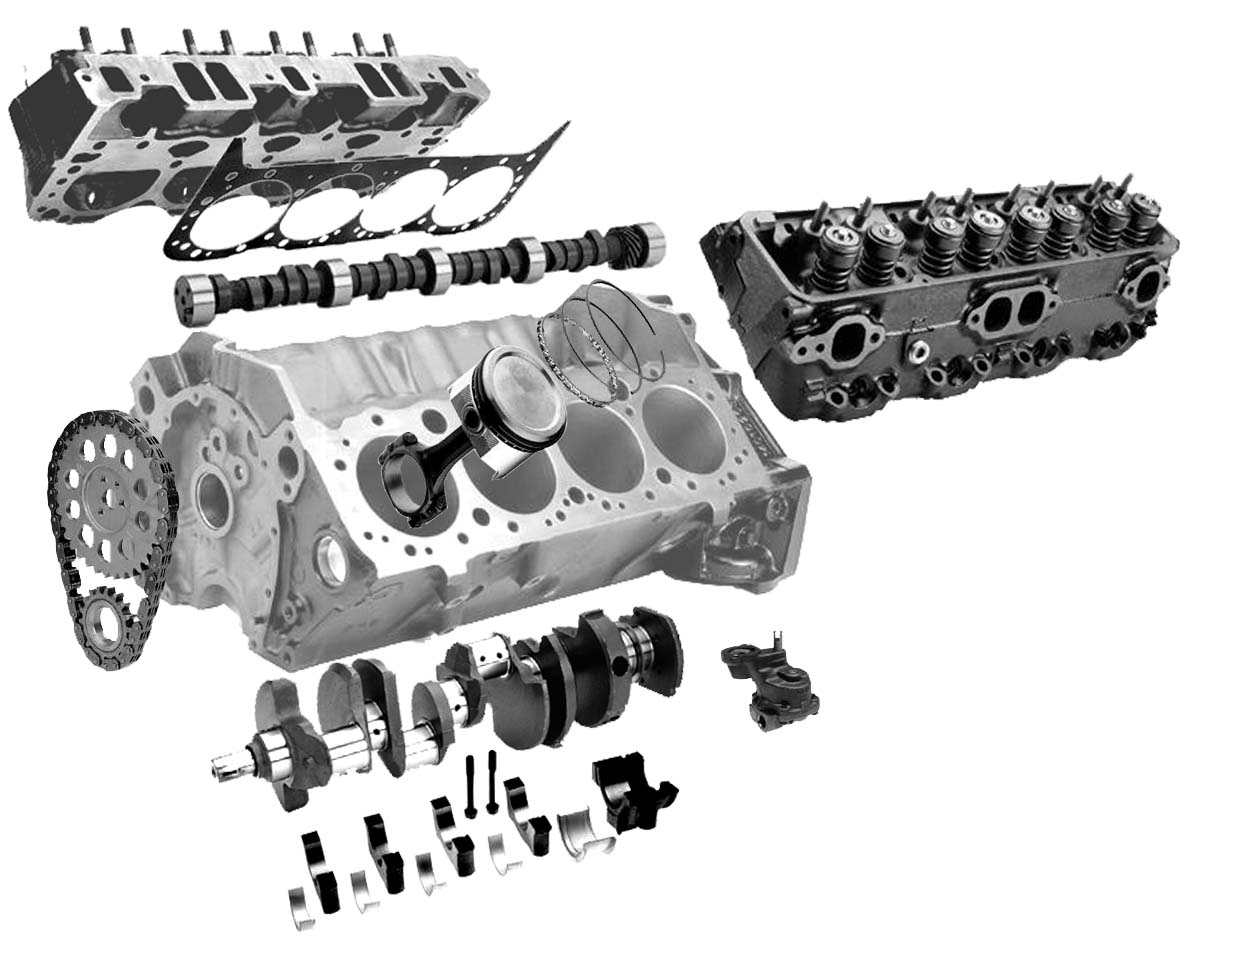 All Engine Components